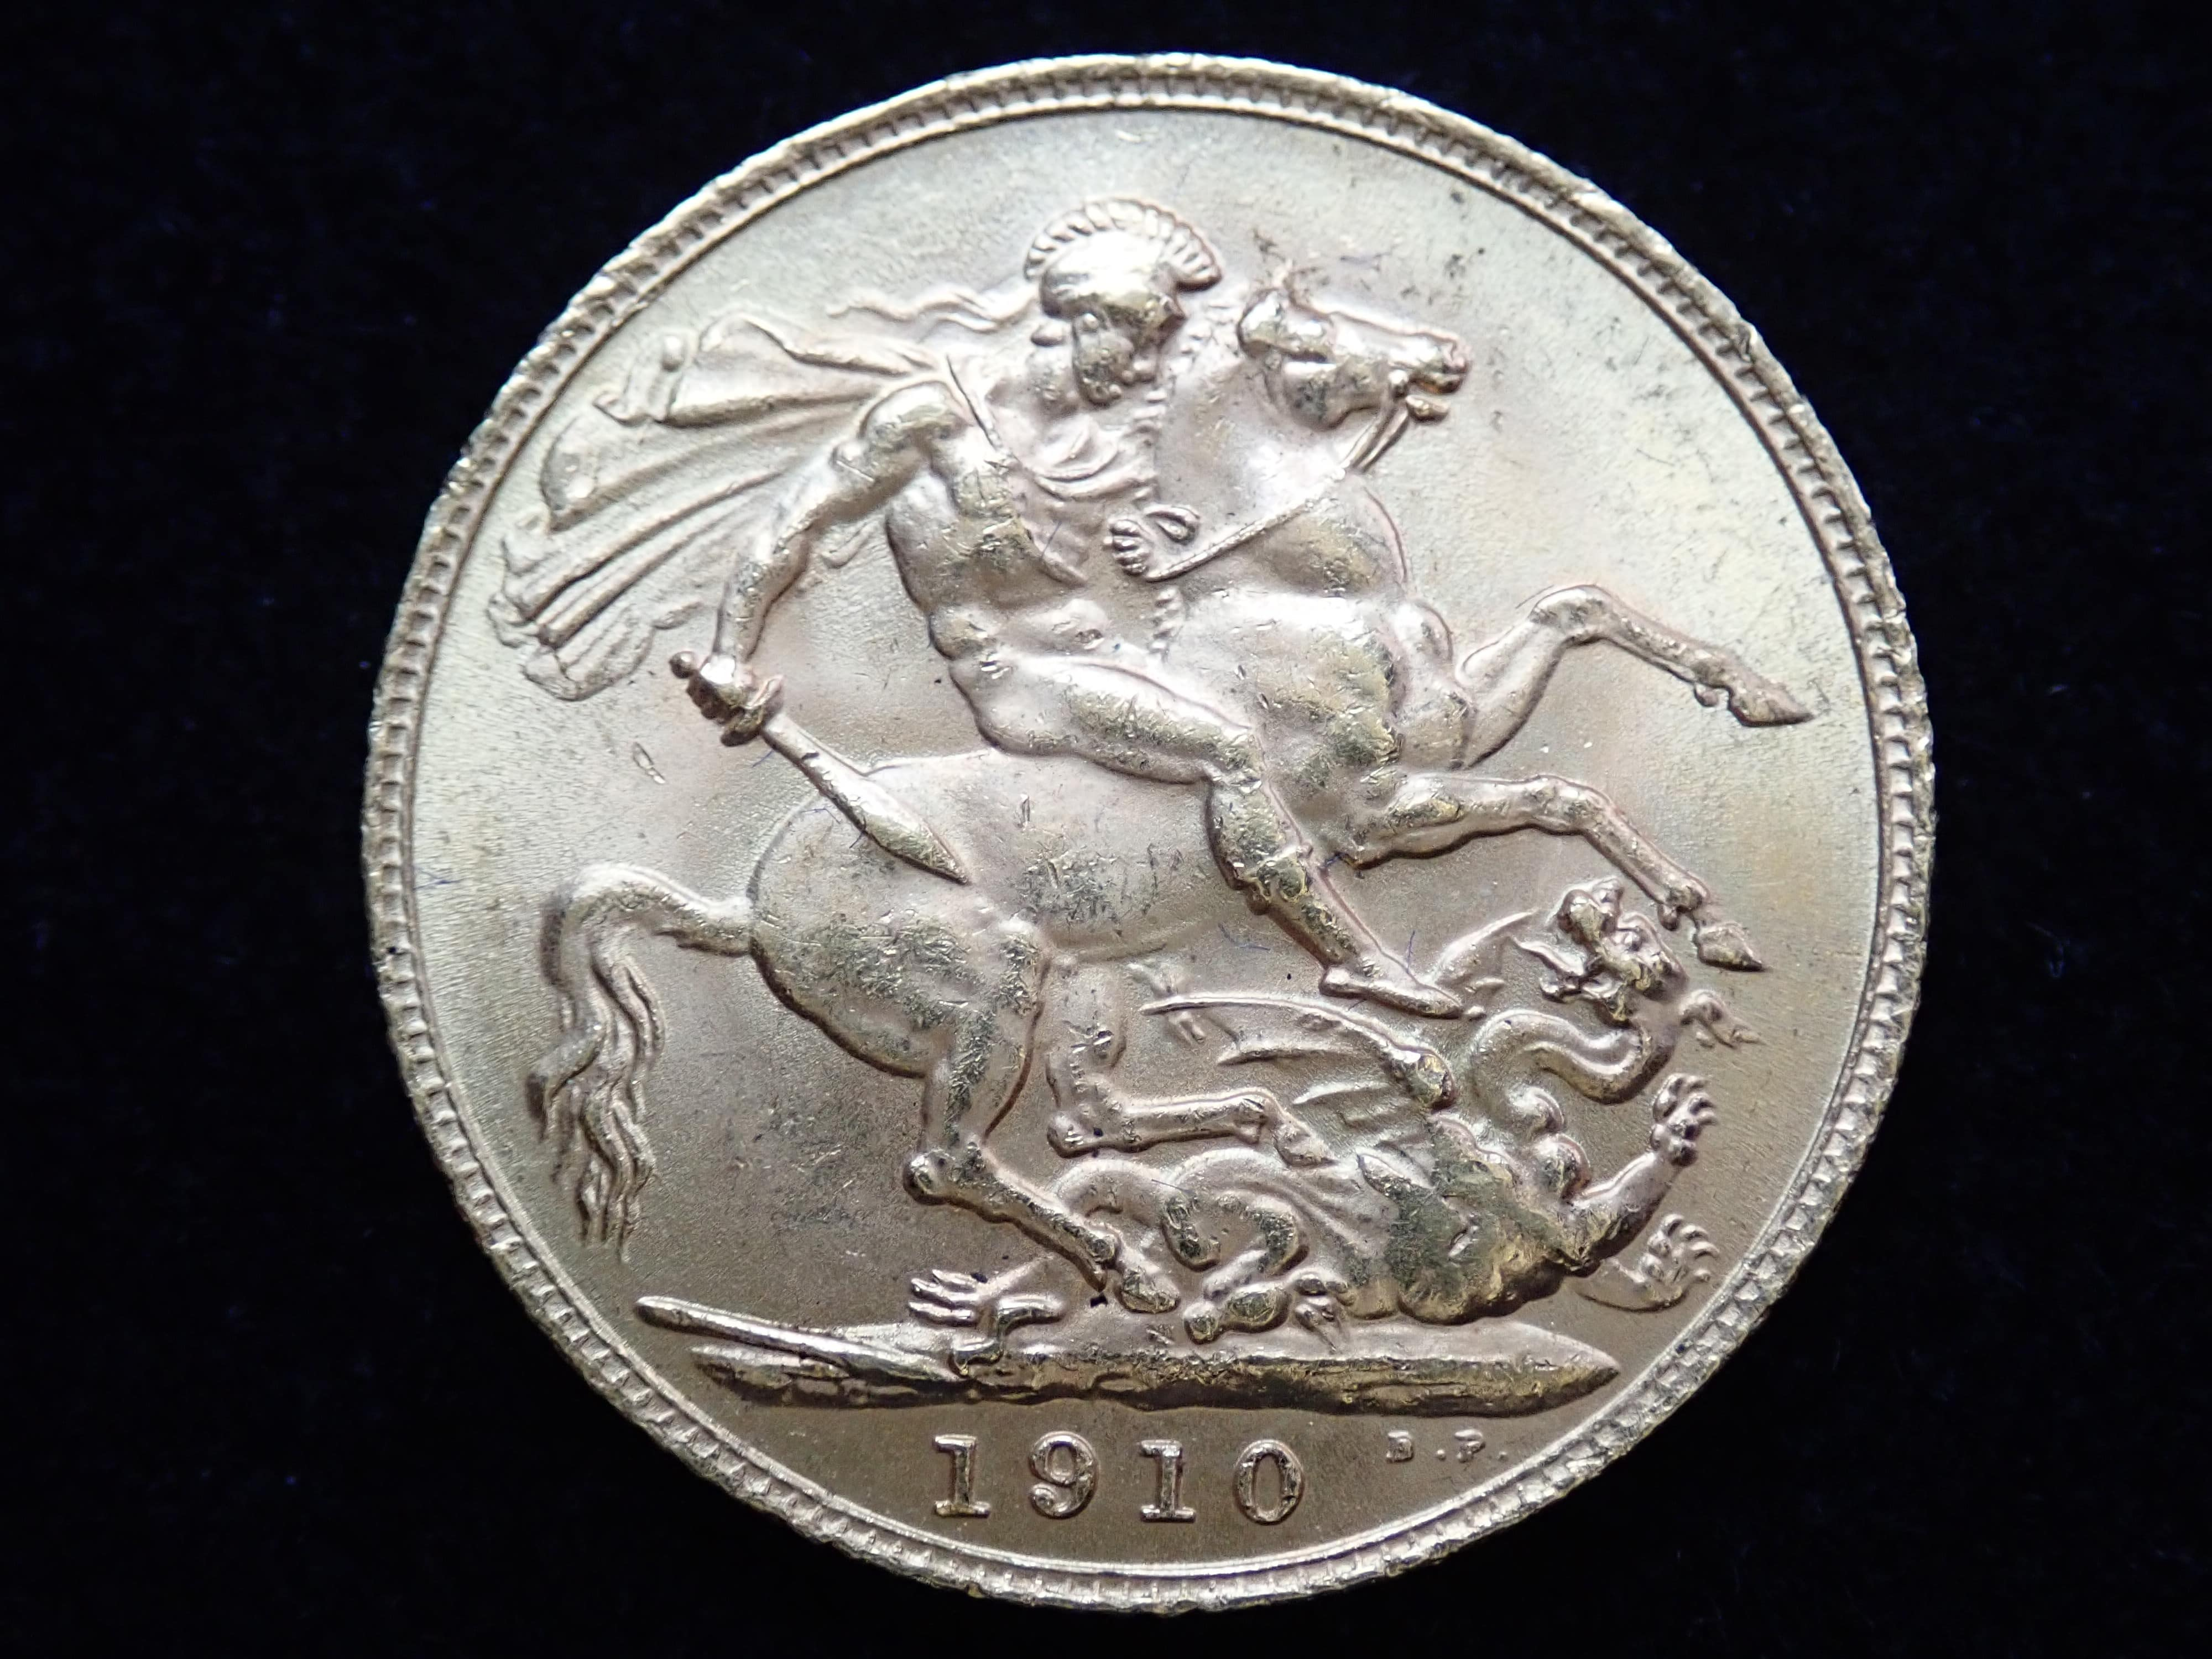 AA000810 - 1910 22ct Gold Full Sovereign King Edward VII Coin London Mint A.U #553